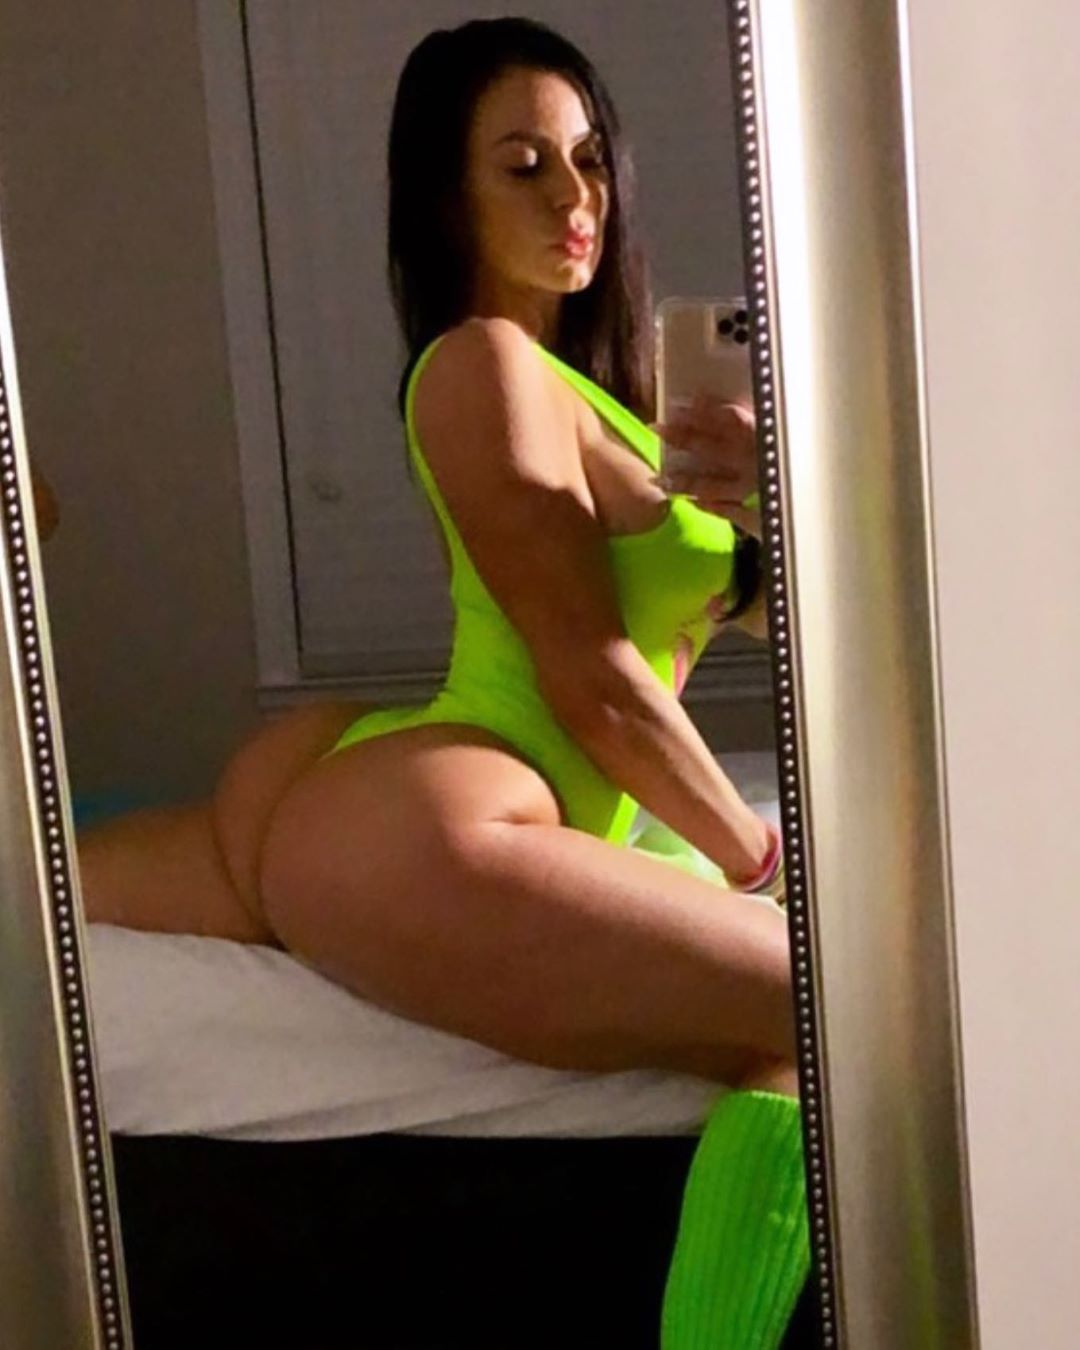 Kendra Lust Drops a Thirst Trap for Her Lions! - Photo 4